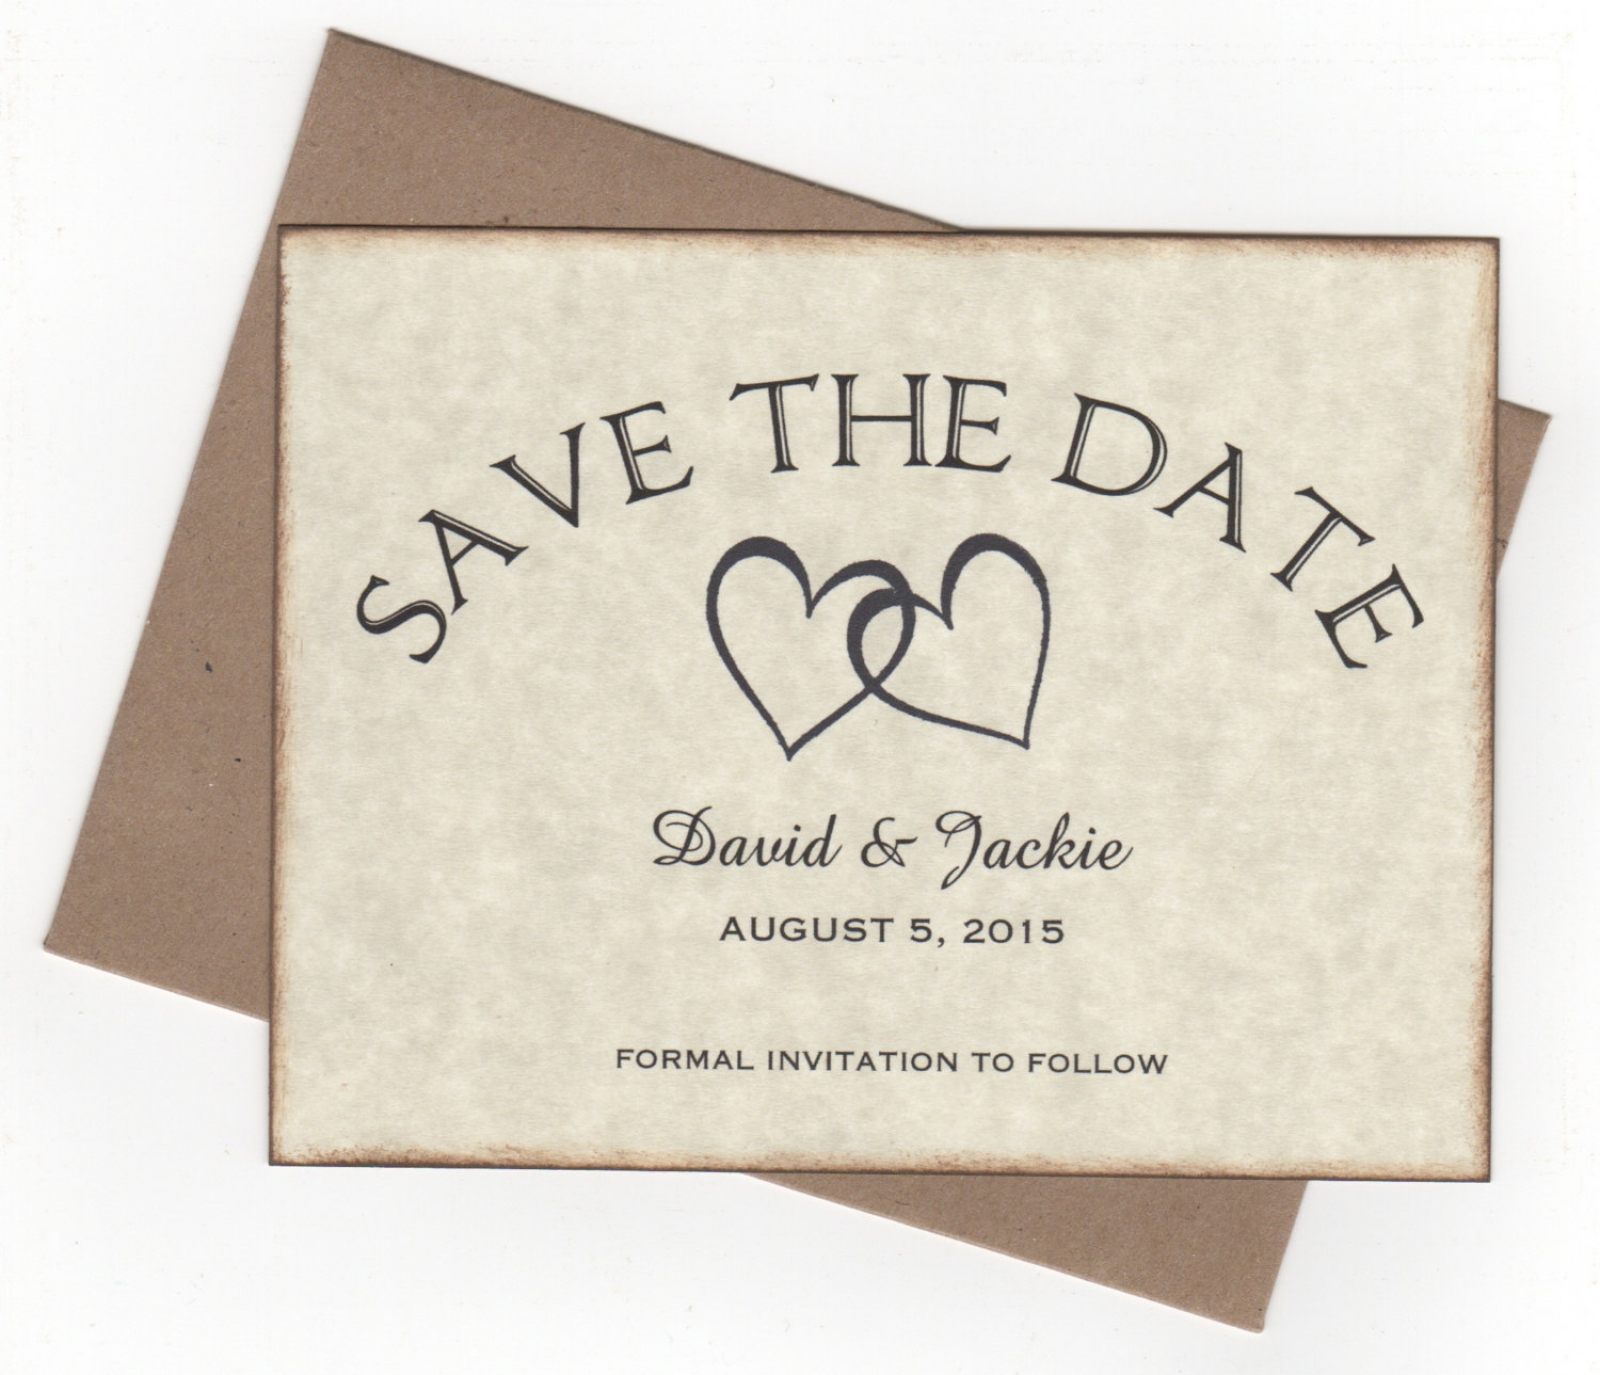 Rustic save the date cards wedding announcement cards wedding rustic save the date cards wedding announcement cards wedding invitations vintage style monicamarmolfo Image collections